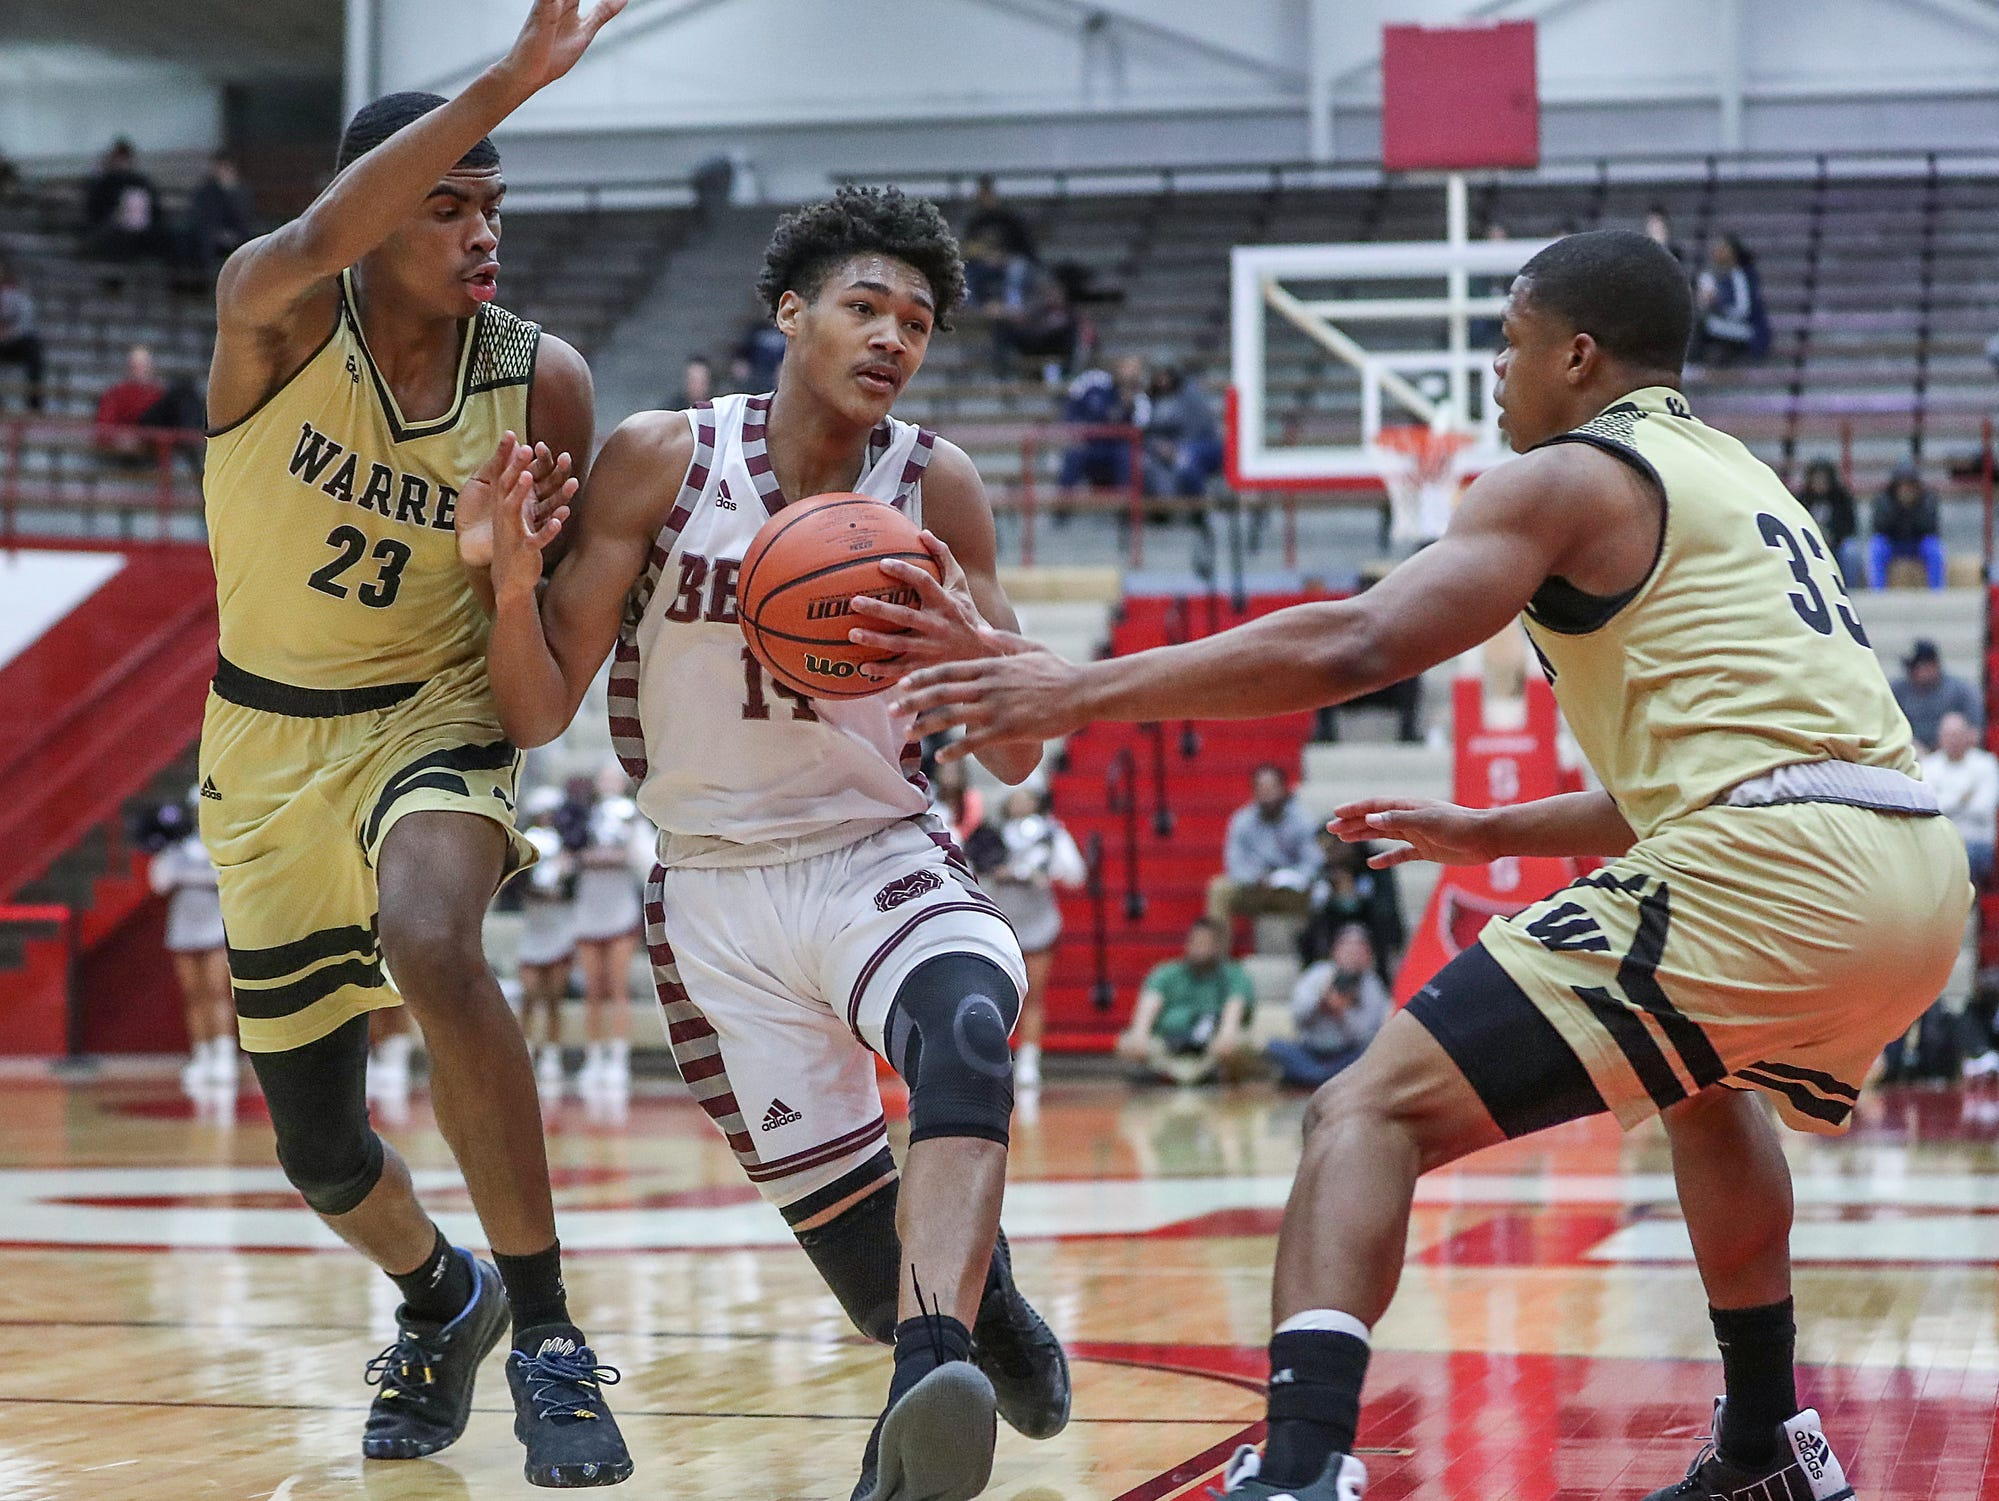 Lawrence Central Bears Dre Davis (14) breaks between warren Central defenders Jakobie Robinson (23) and Manuel Brown (33) in the first half of Marion County tournament finals at Southport High School in Indianapolis, Monday, Jan. 14, 2019.